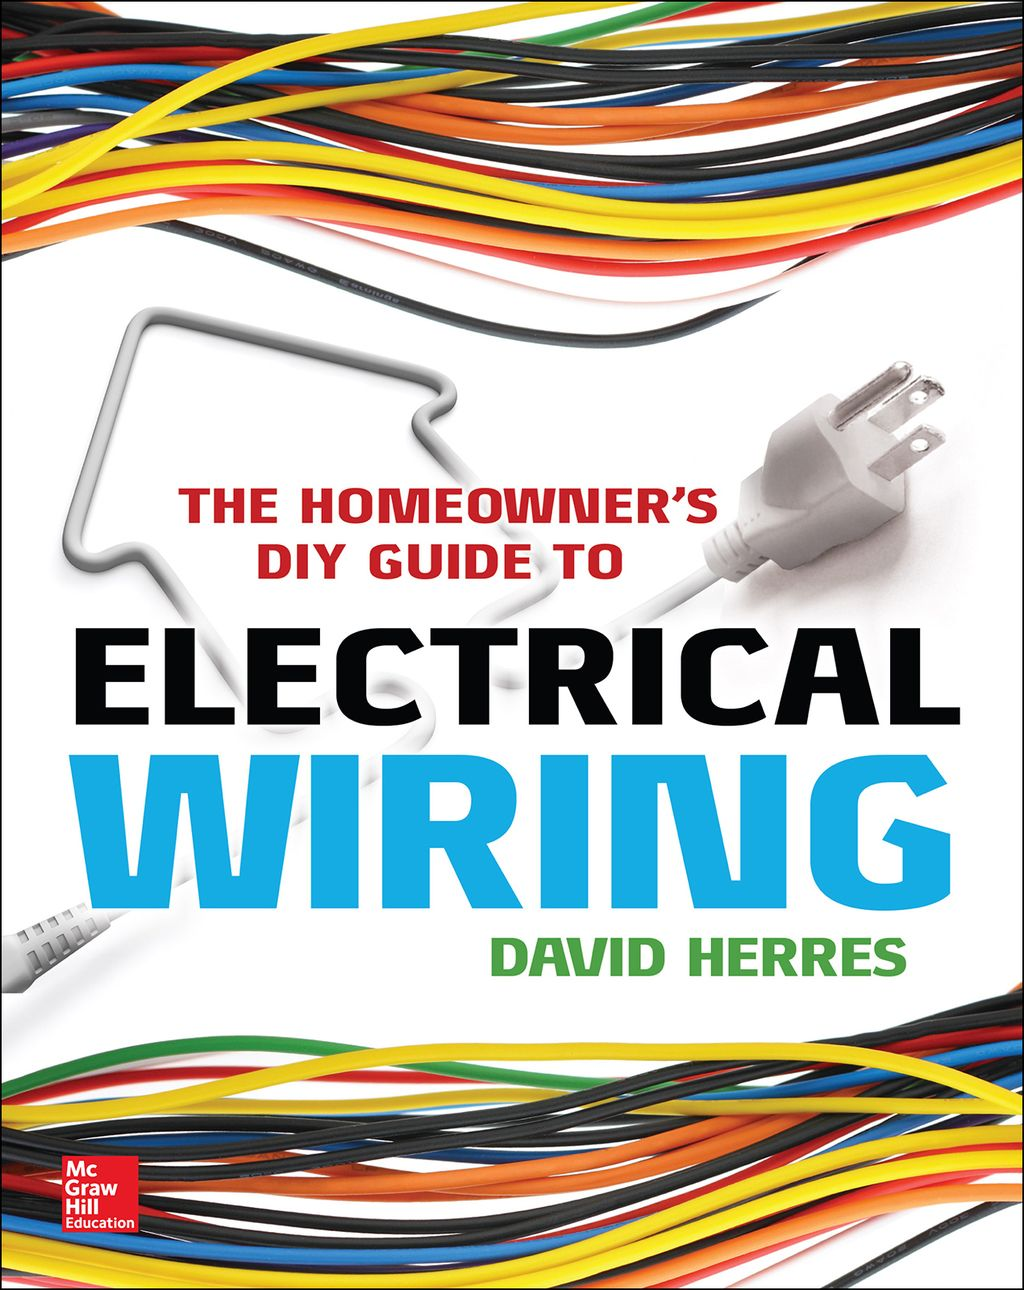 The Homeowner's DIY Guide to Electrical Wiring (eBook